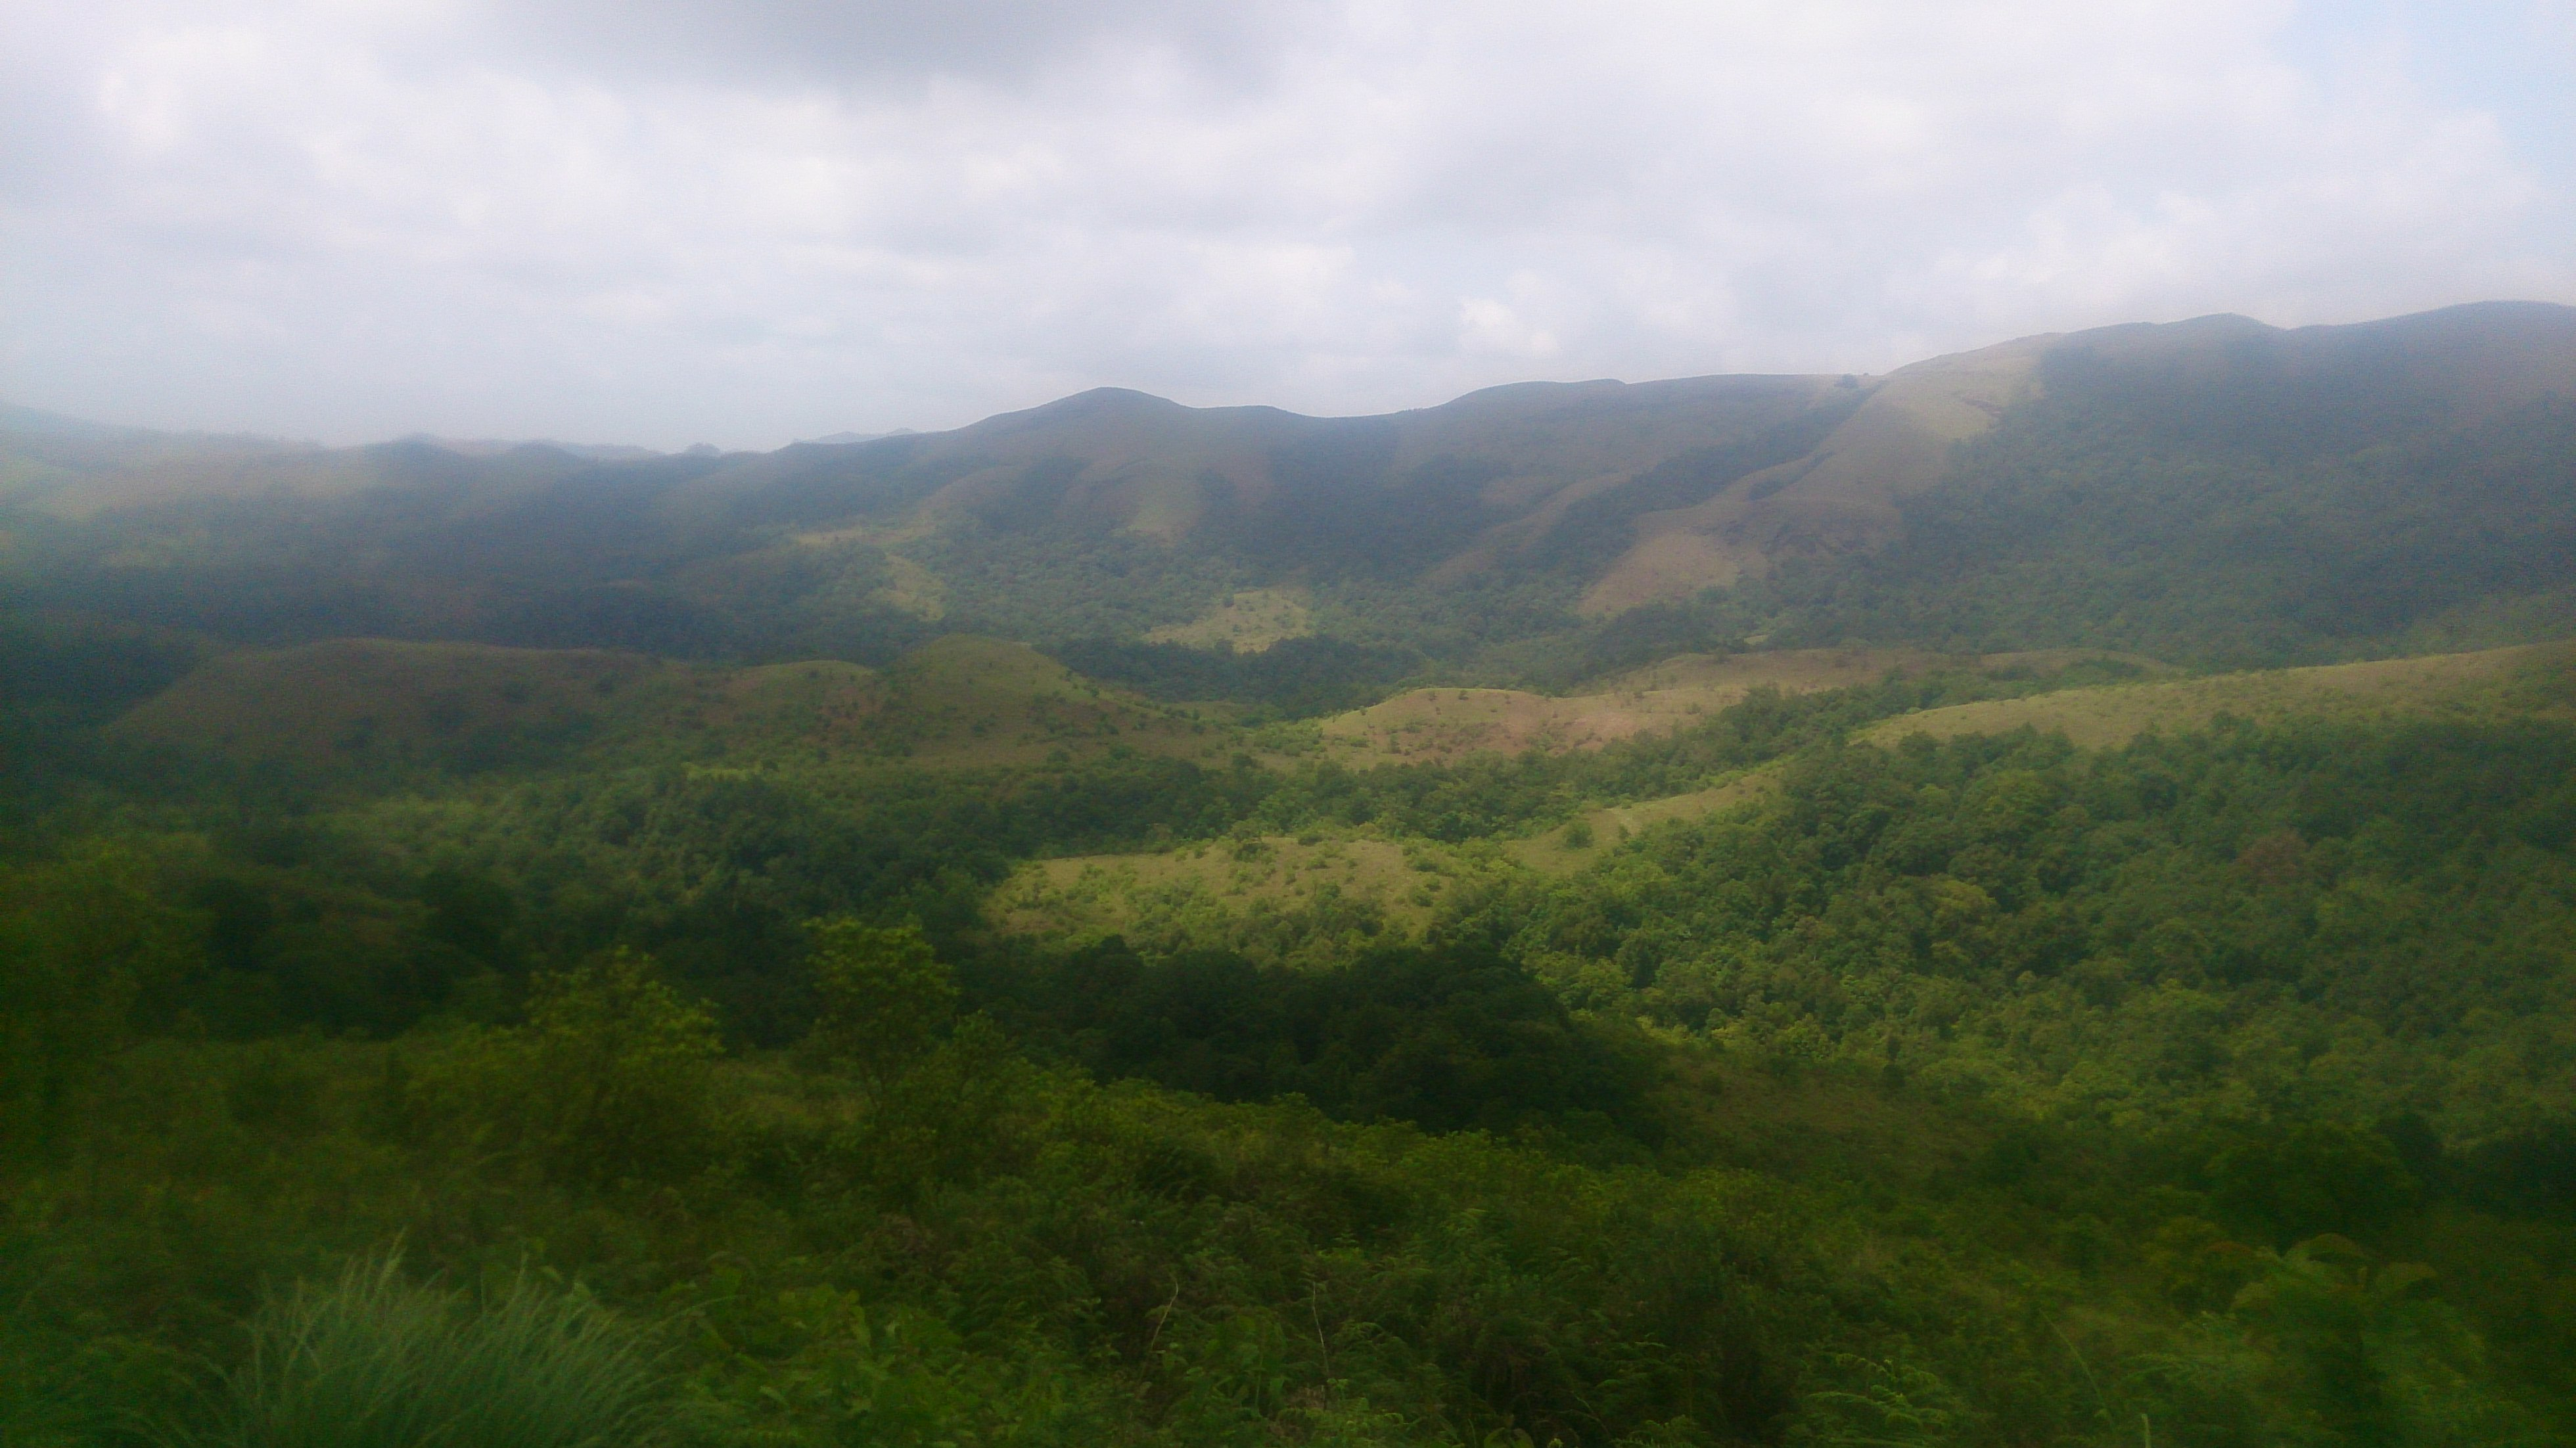 Kudremukh view from peak of trekking trail